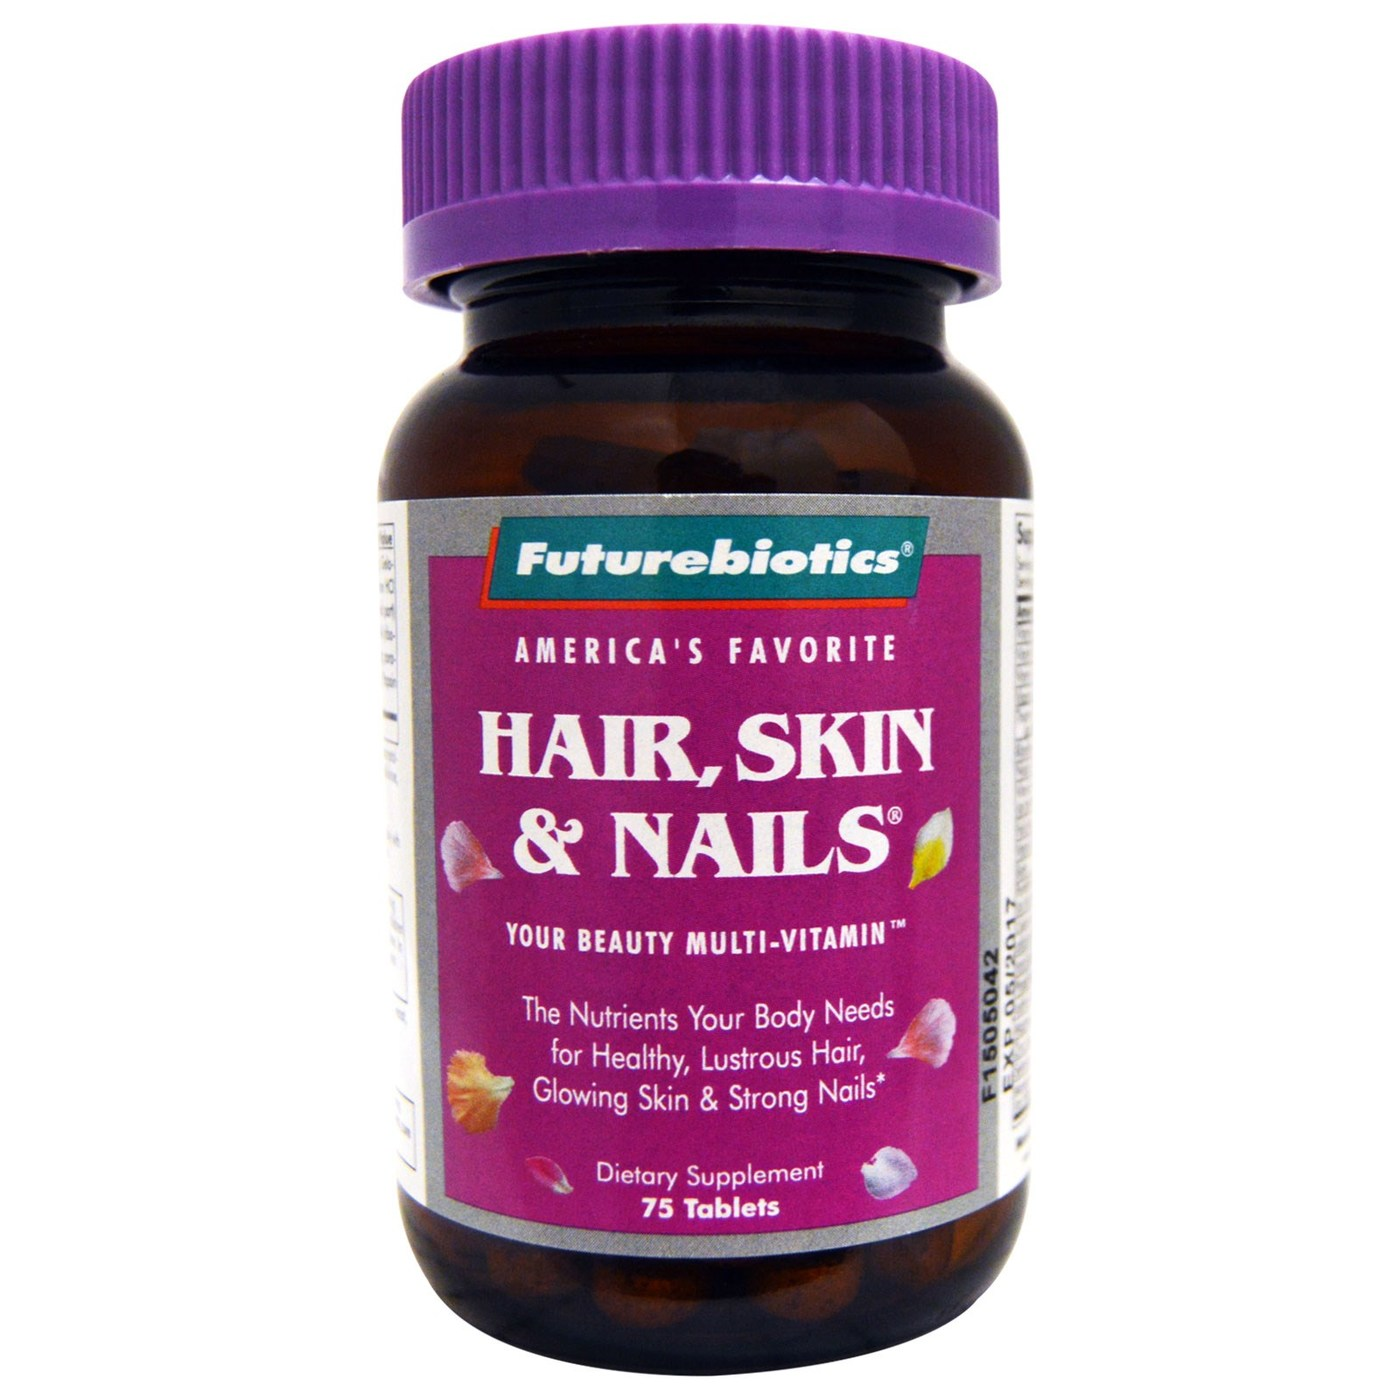 futurebiotics hair skin nails for 75 tablets